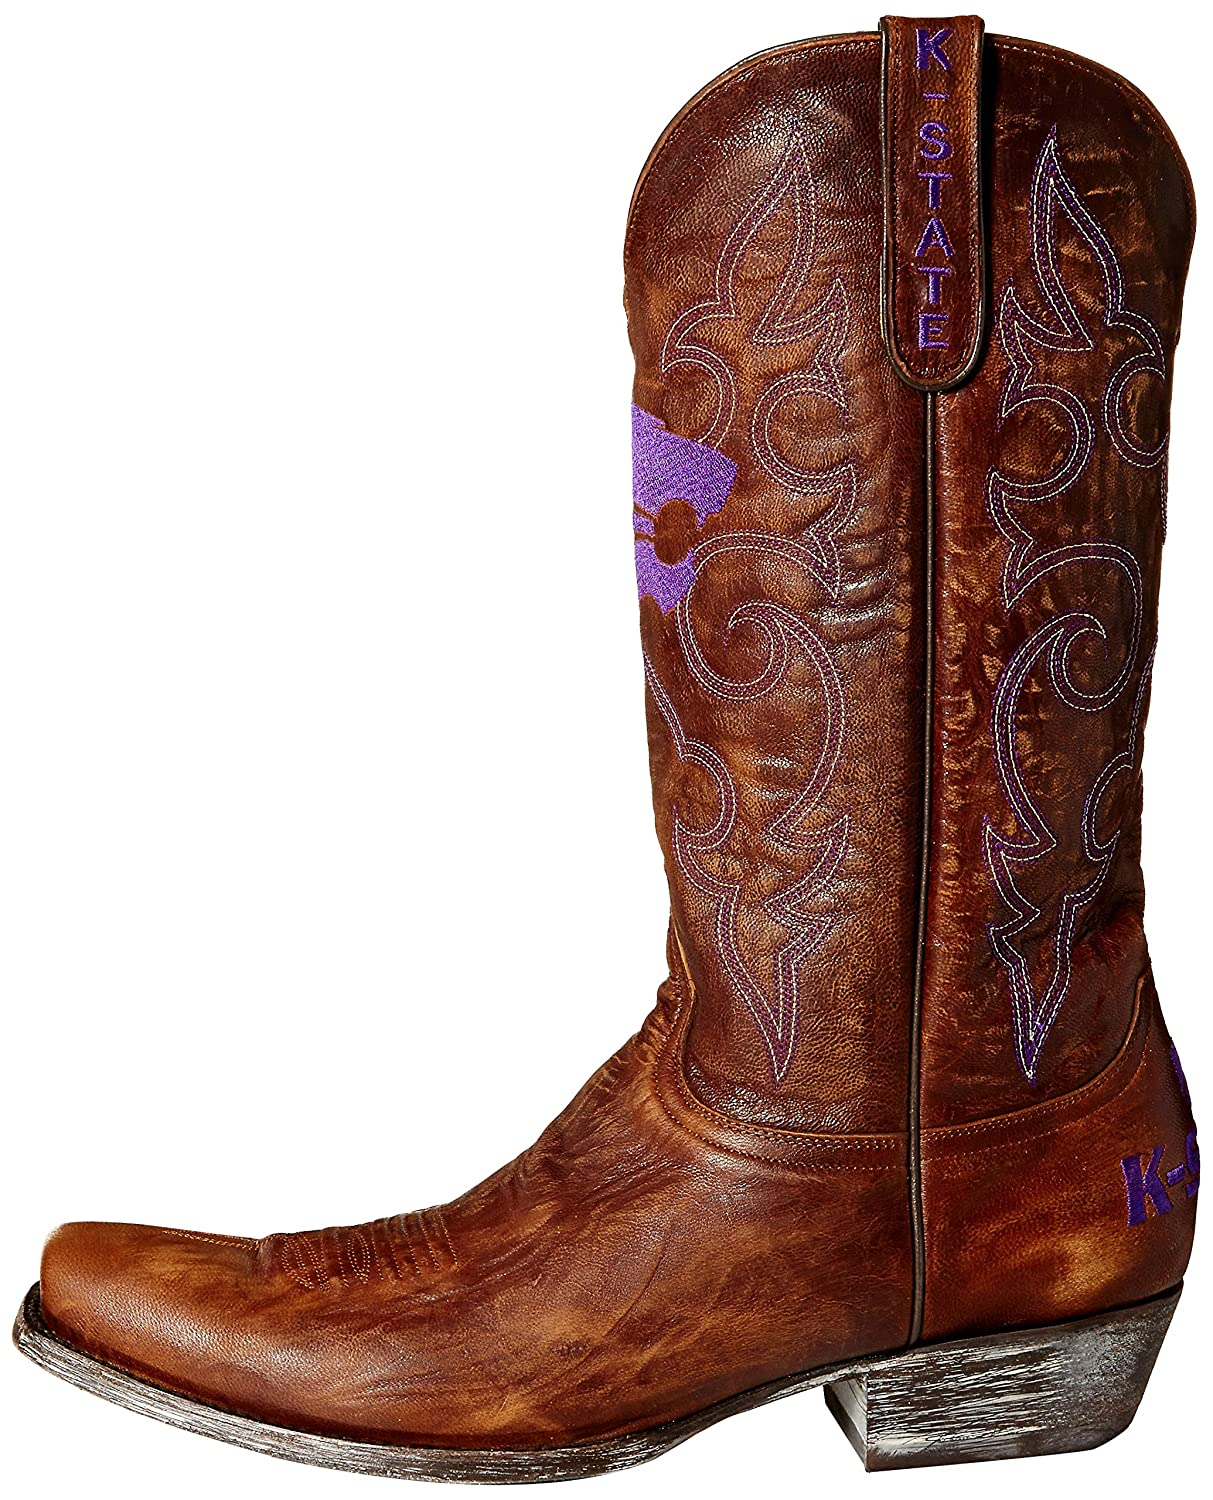 NCAA Kansas State Wildcats Men's Board Room Style Stiefel, Stiefel, Stiefel, Brass c8e584